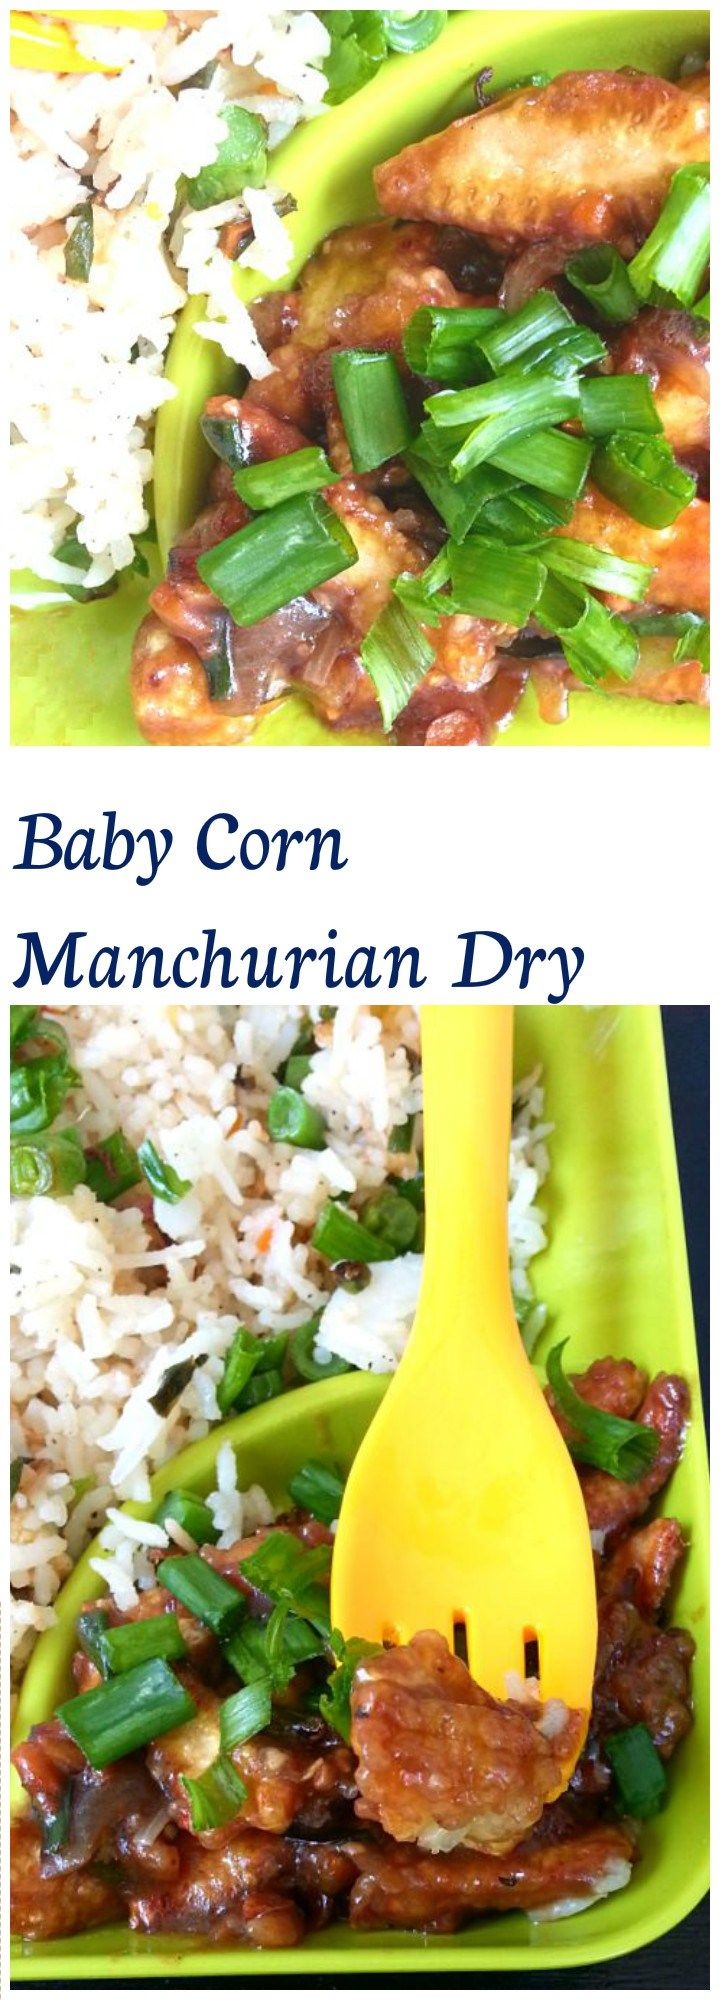 Baby corn Manchurian dry -Crisp Fried baby corn cooked in an Indo-Chinese sauce, is an awesome evening snack across many cities in India.